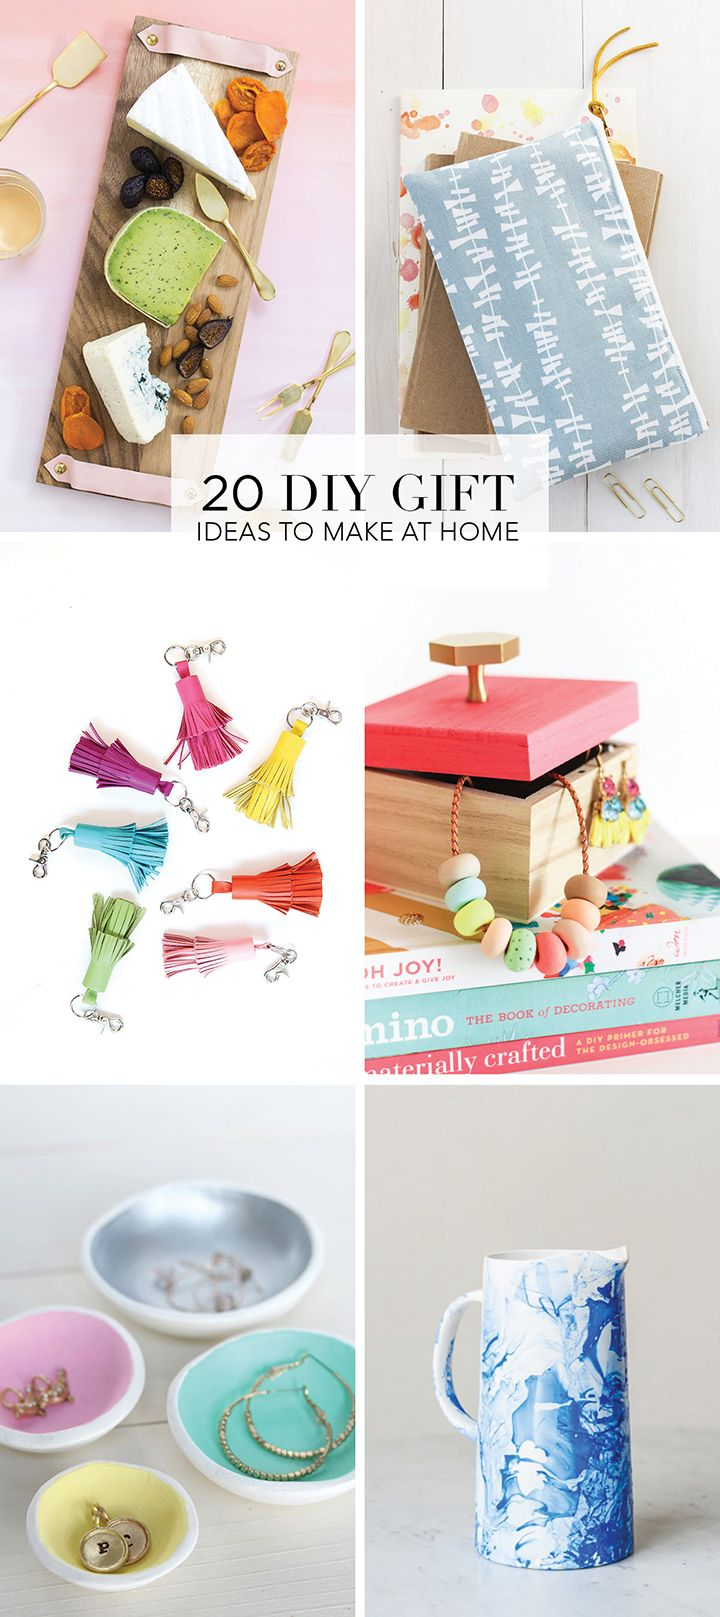 20 DIY Holiday Gift Ideas   Handmade, Gift ideas and At home